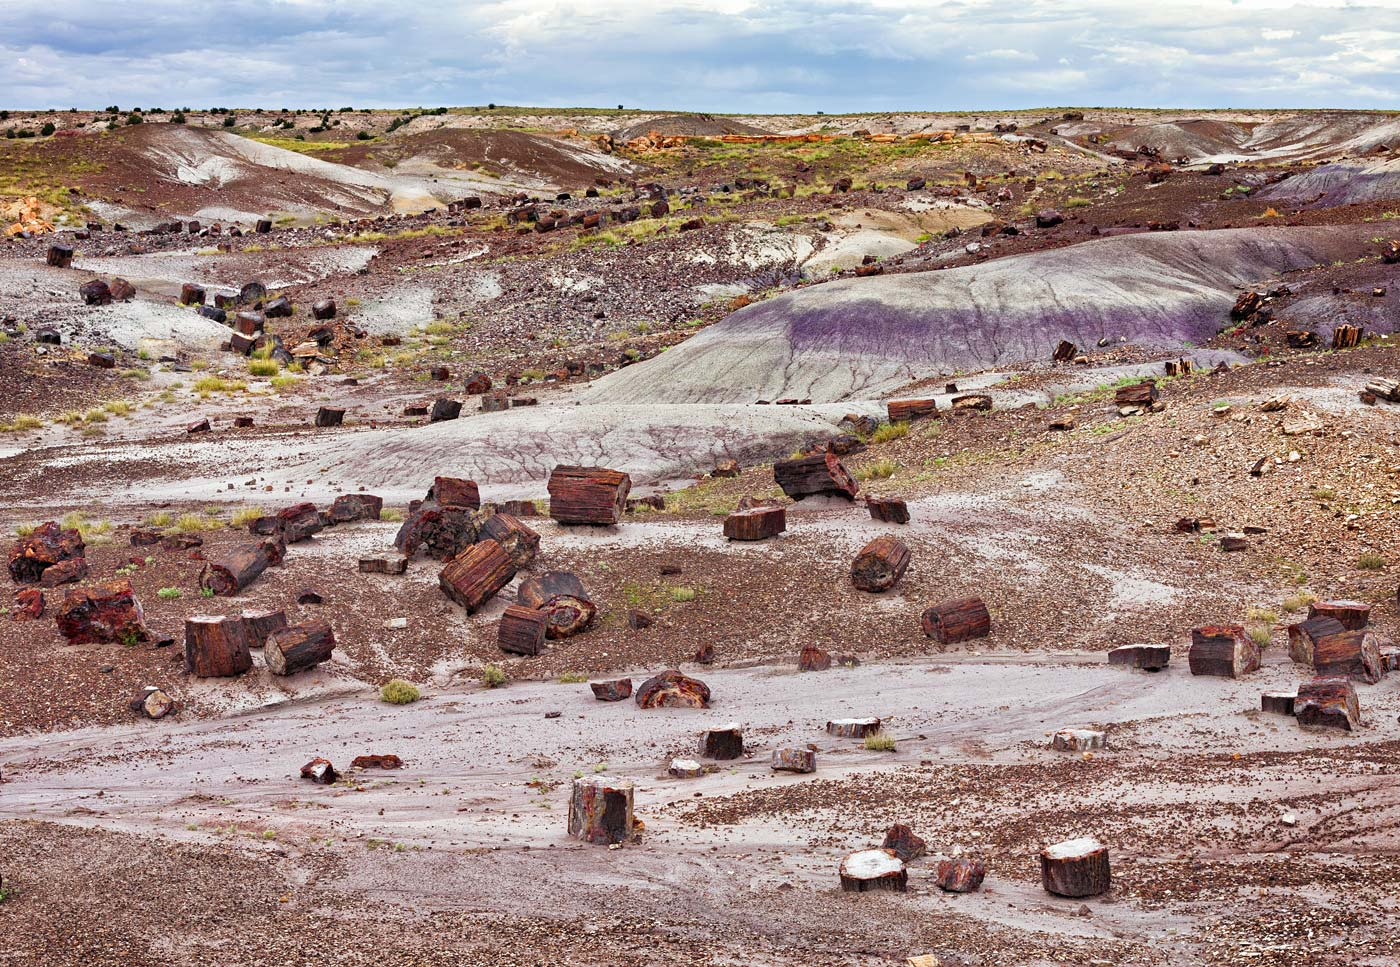 Petrified-Forest-National-Park-ABP-Crystal-Forest.jpg